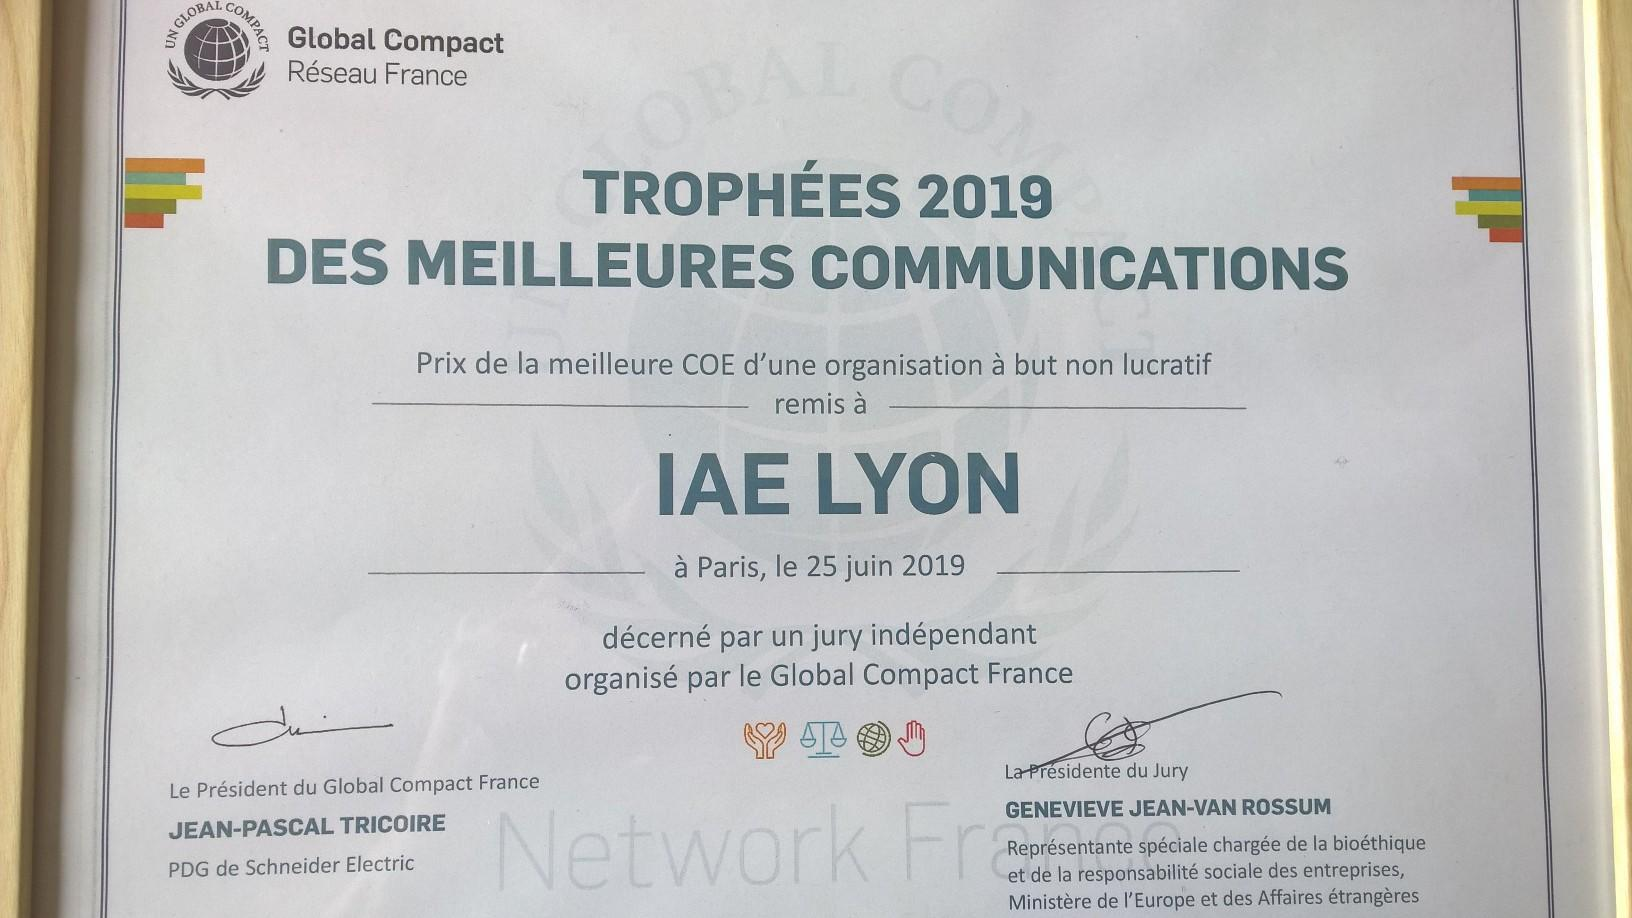 Trophées Global Compact France 2019 - iaelyon